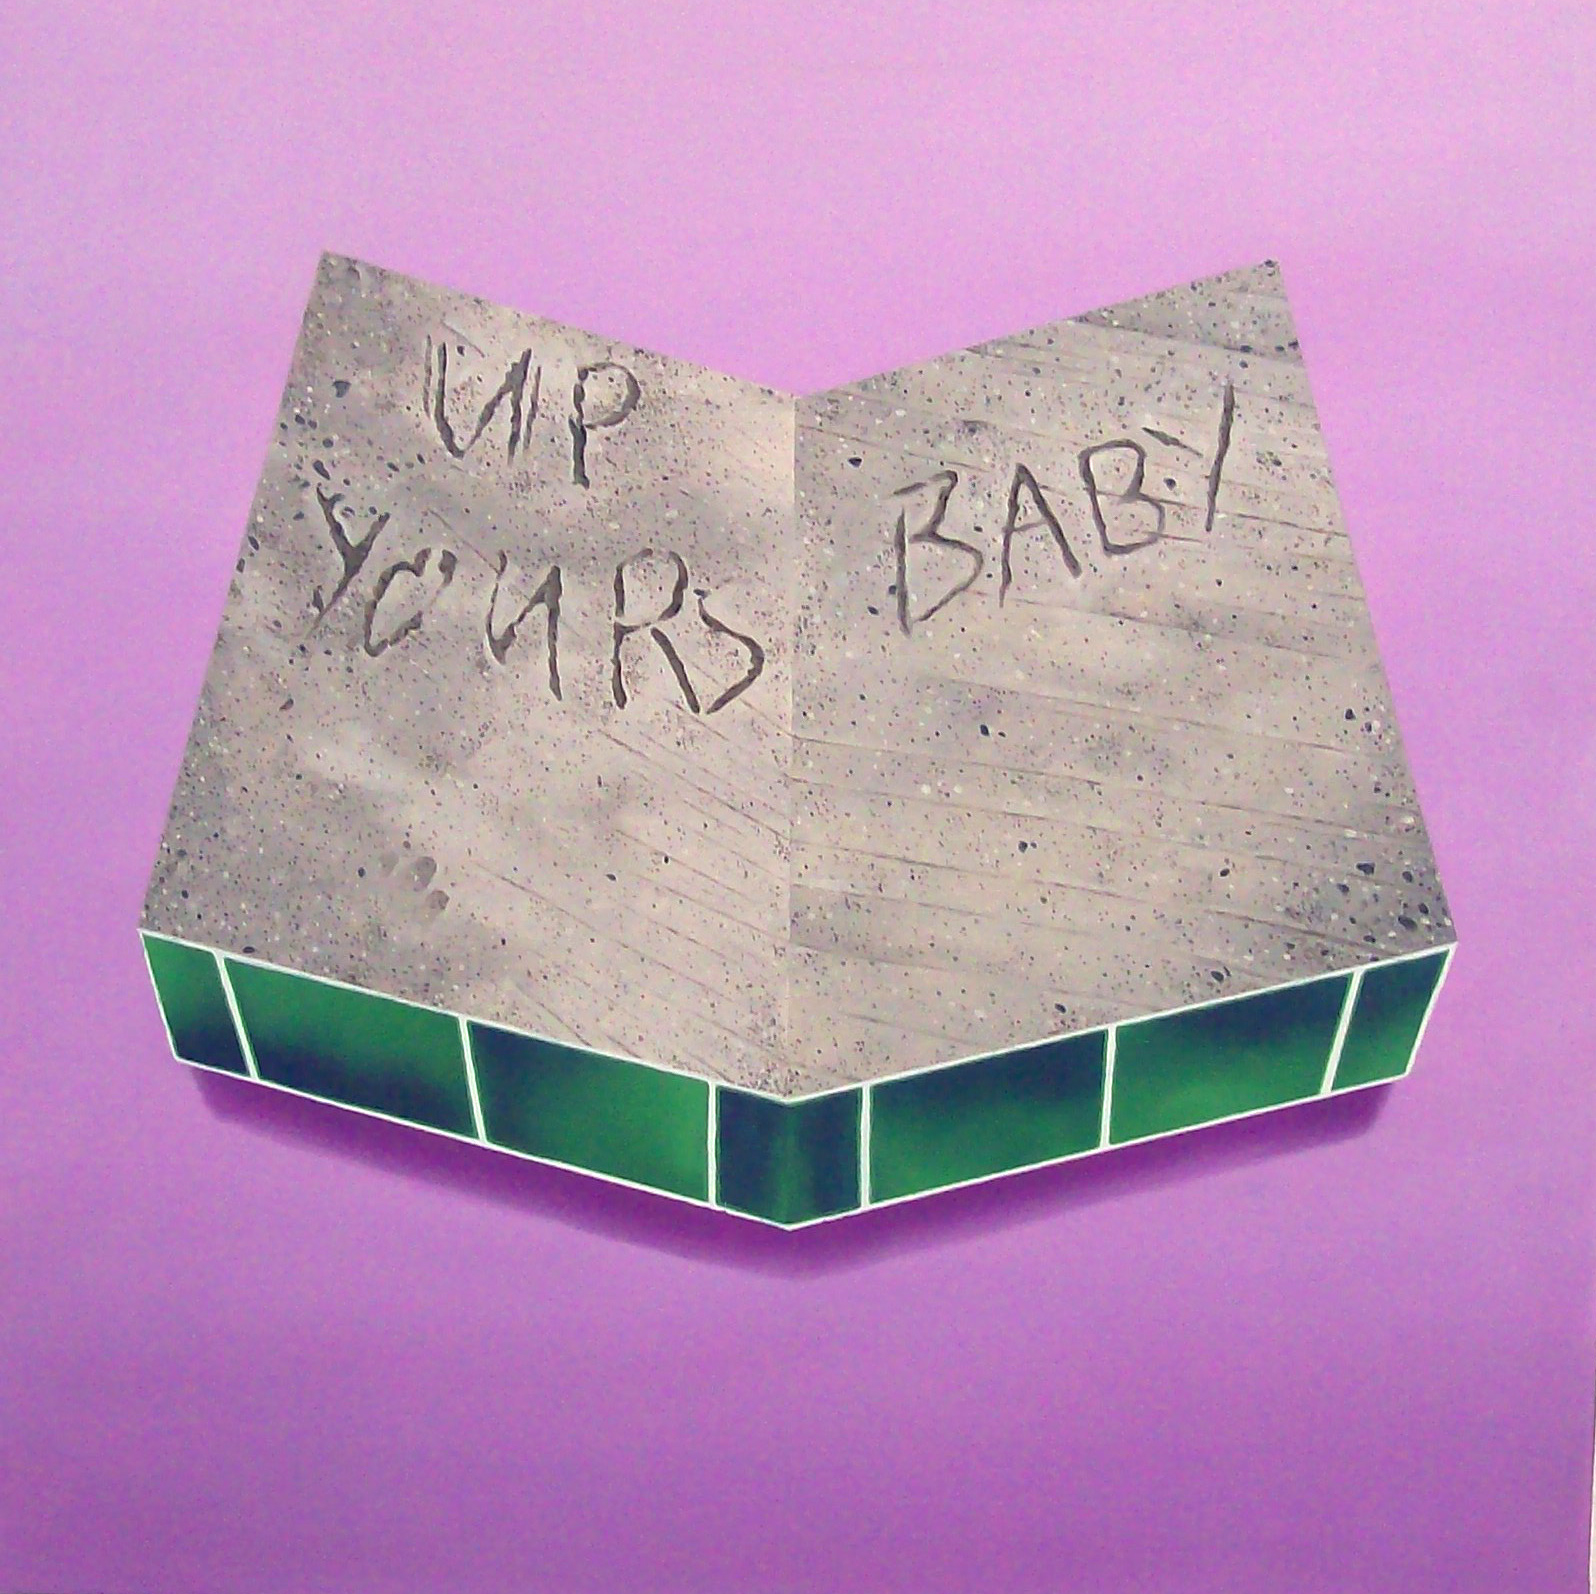 Up Yours Baby, oil on canvas, 2008